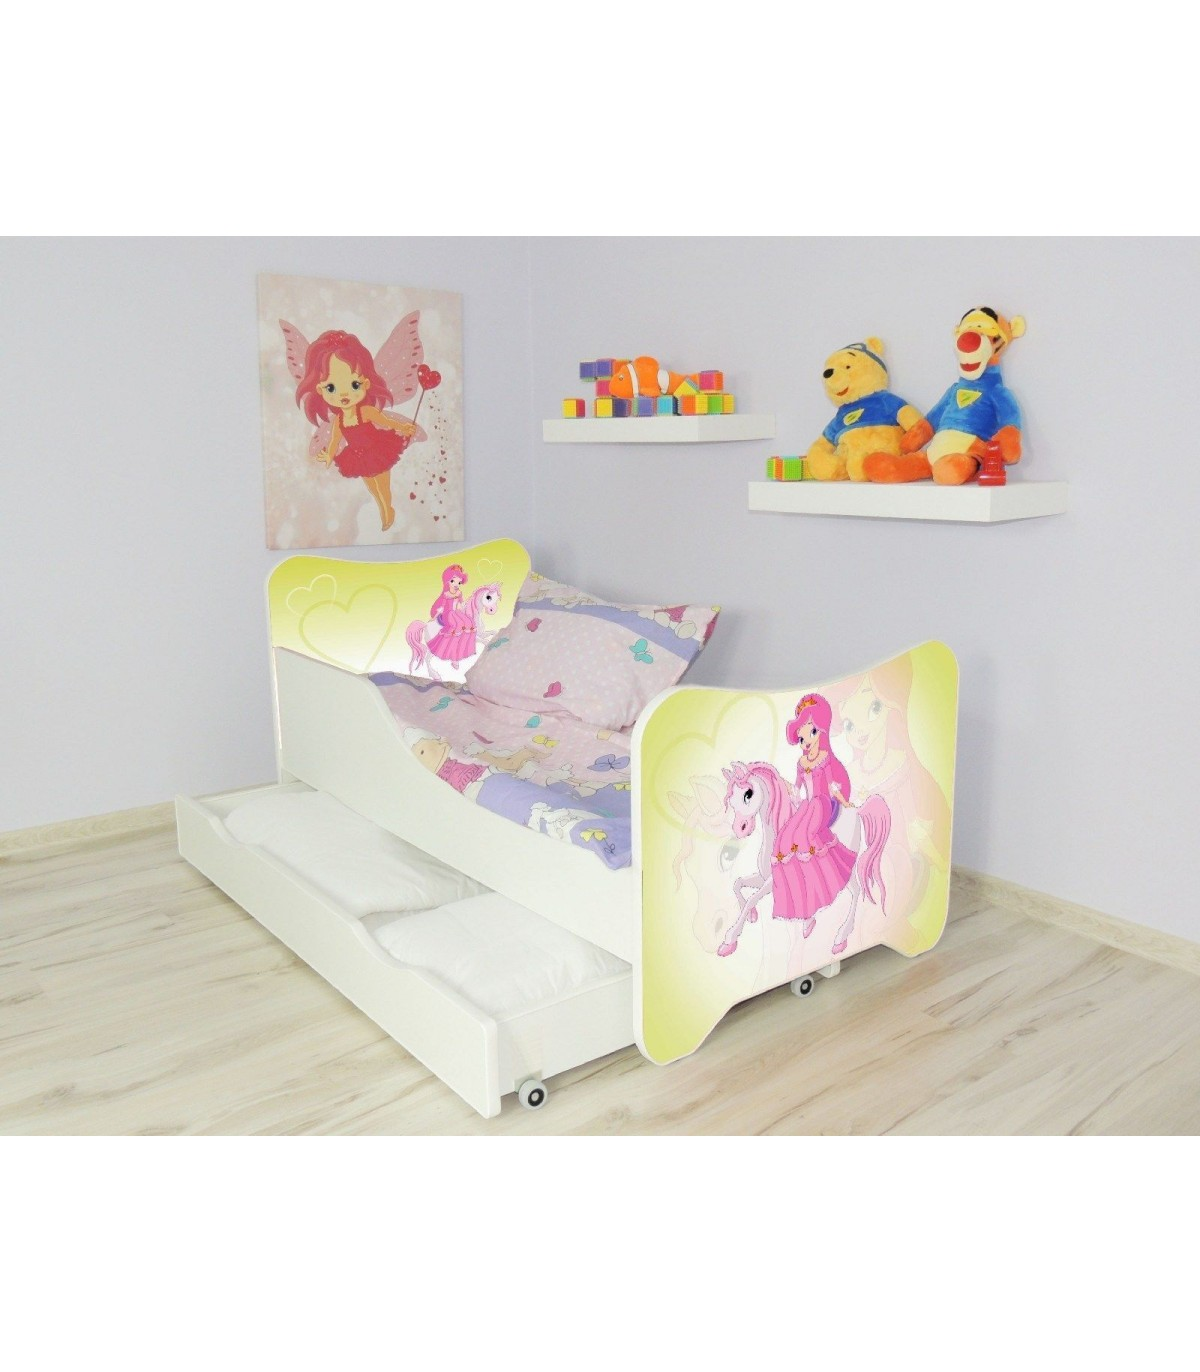 Children Bed Pony Single Bed For Girls Kids With Mattress 140x70 Cm Drawer Pillow